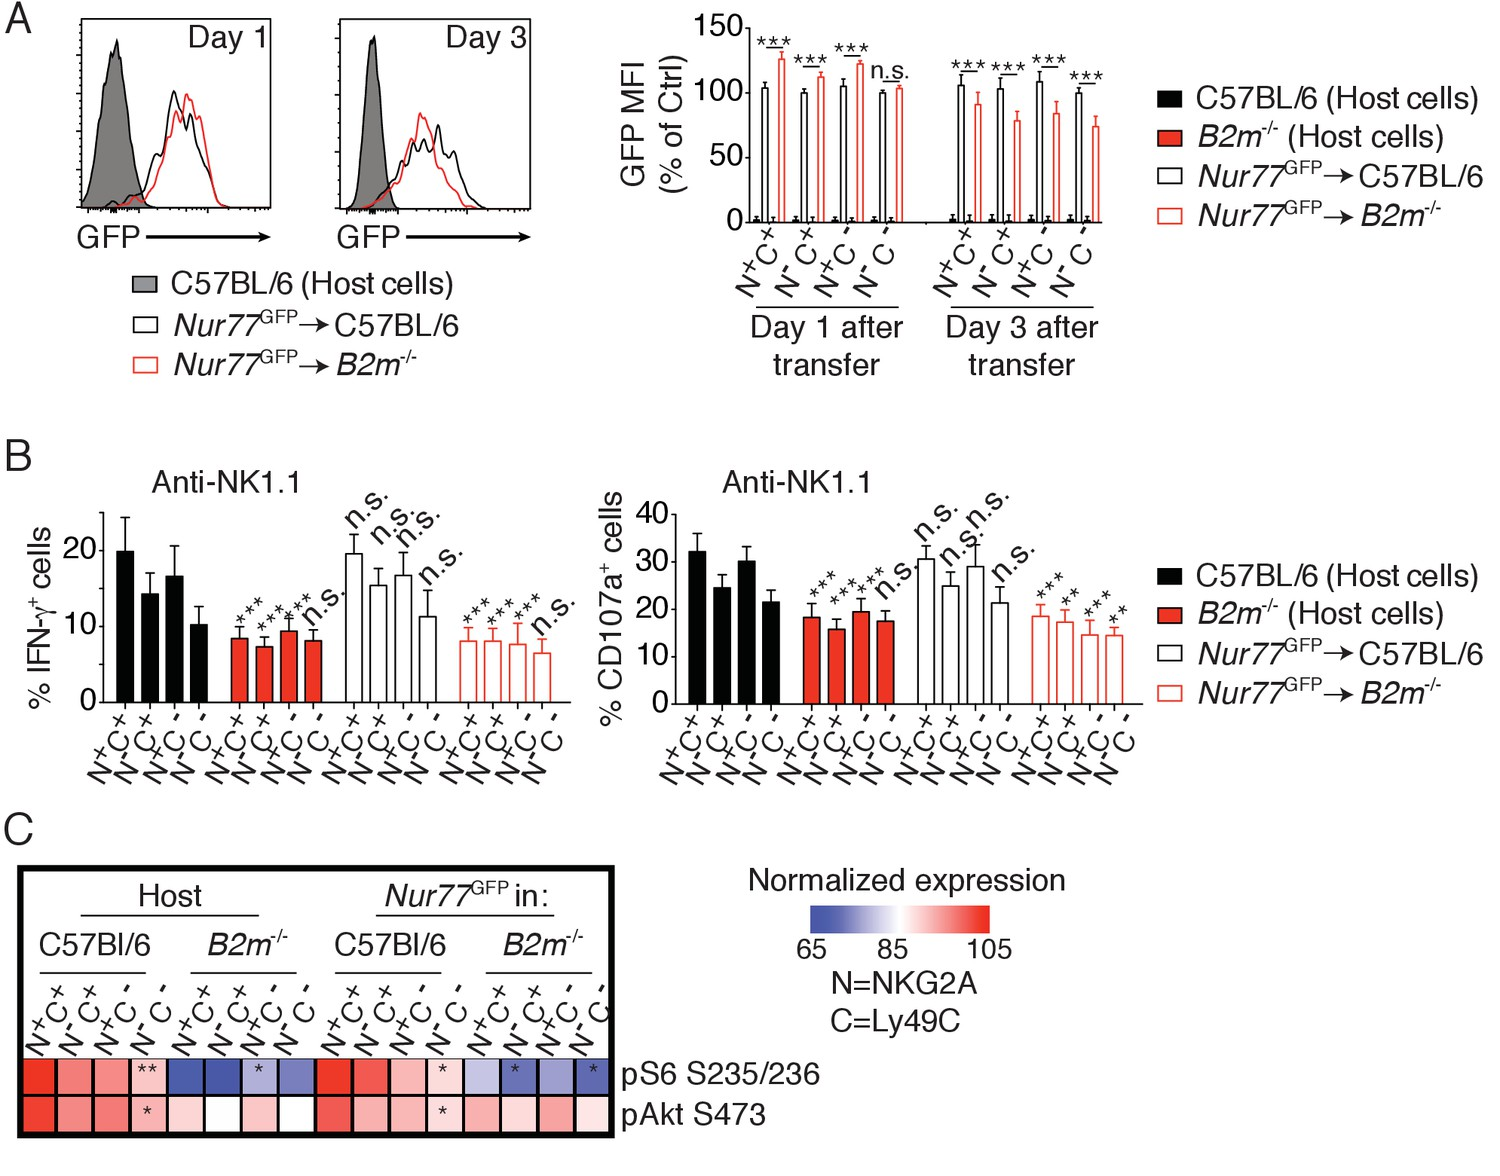 High Mtor Activity Is A Hallmark Of Reactive Natural Killer Cells And Amplifies Early Signaling